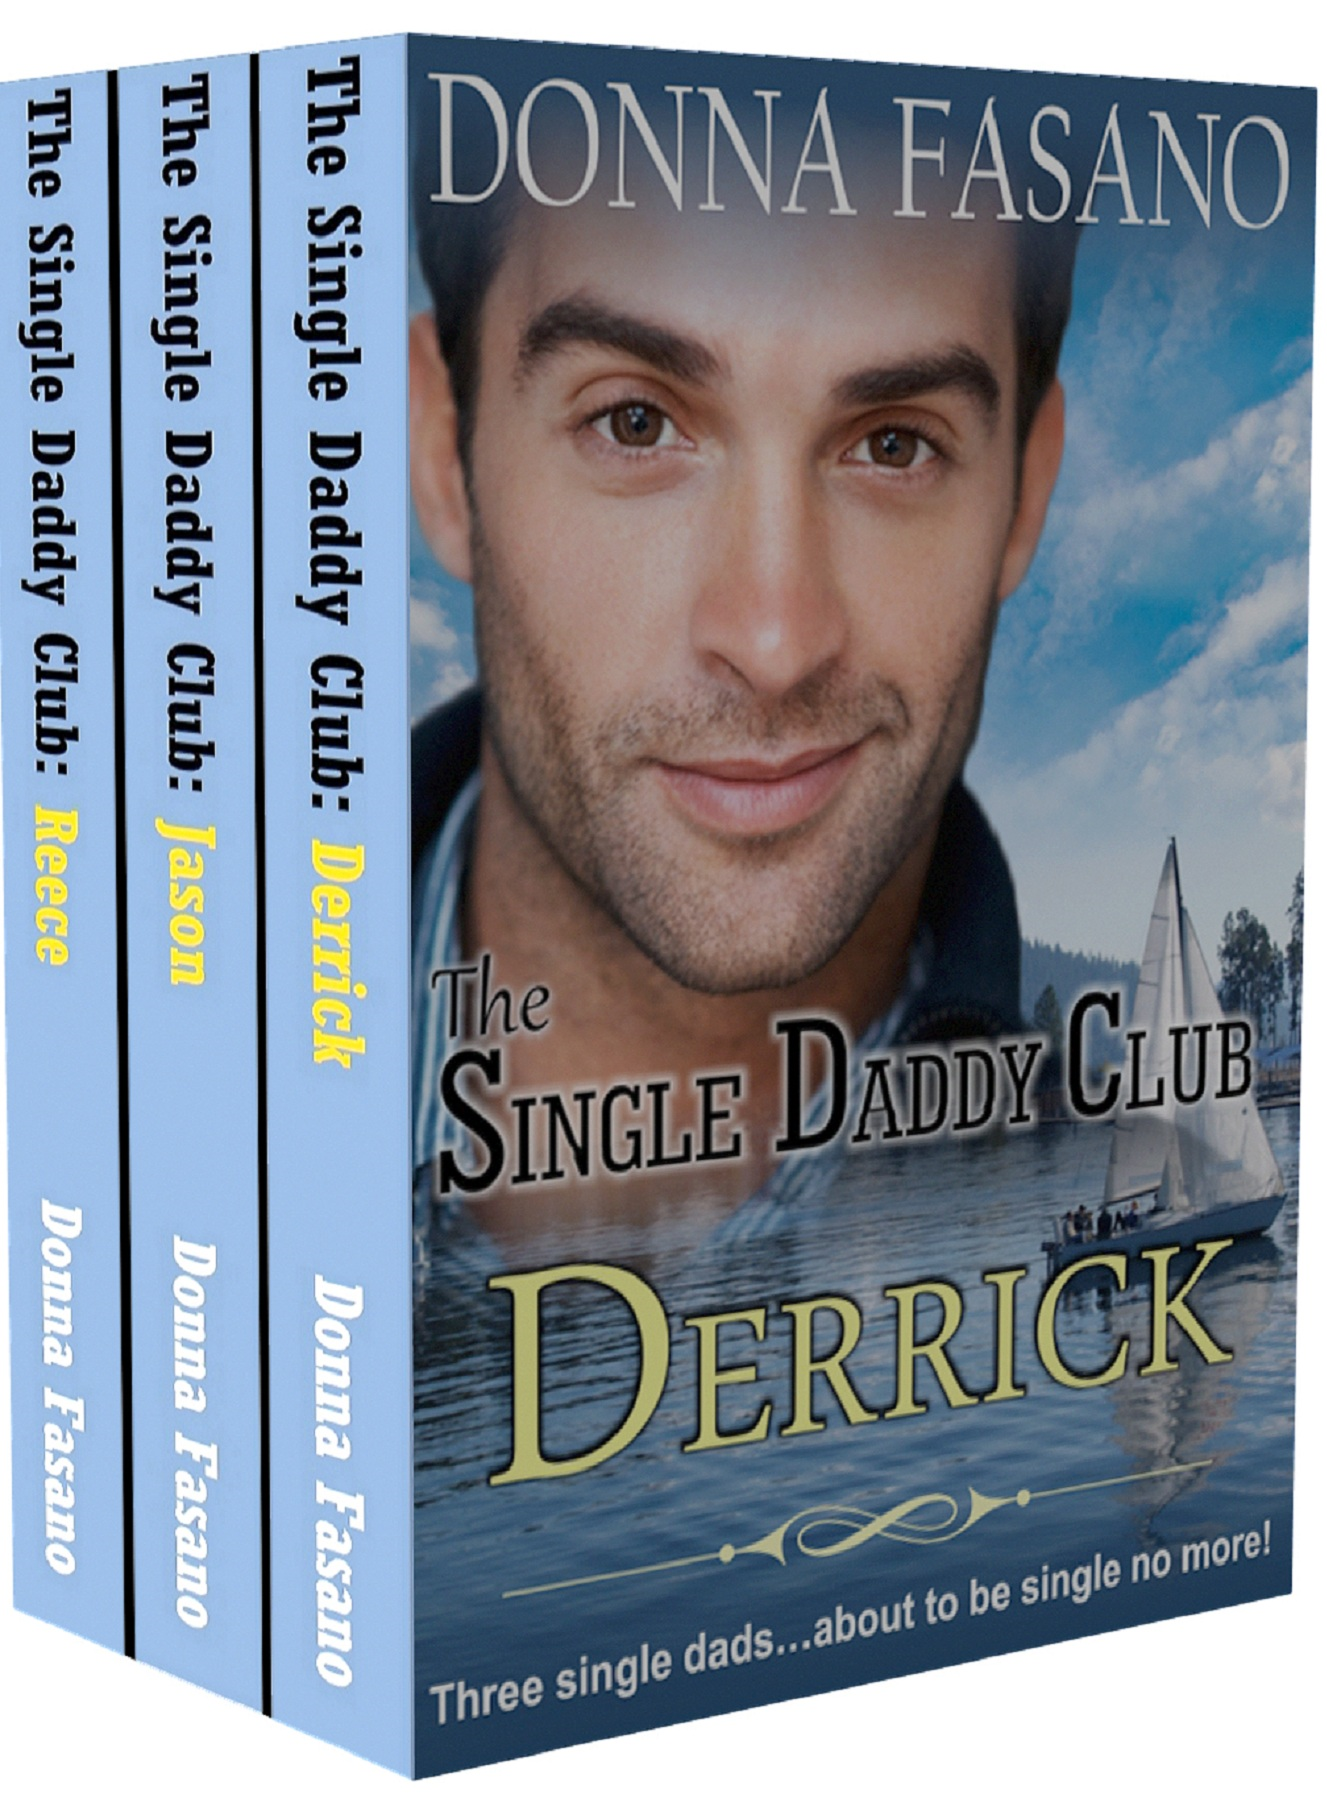 The Single Daddy Club Boxed Set